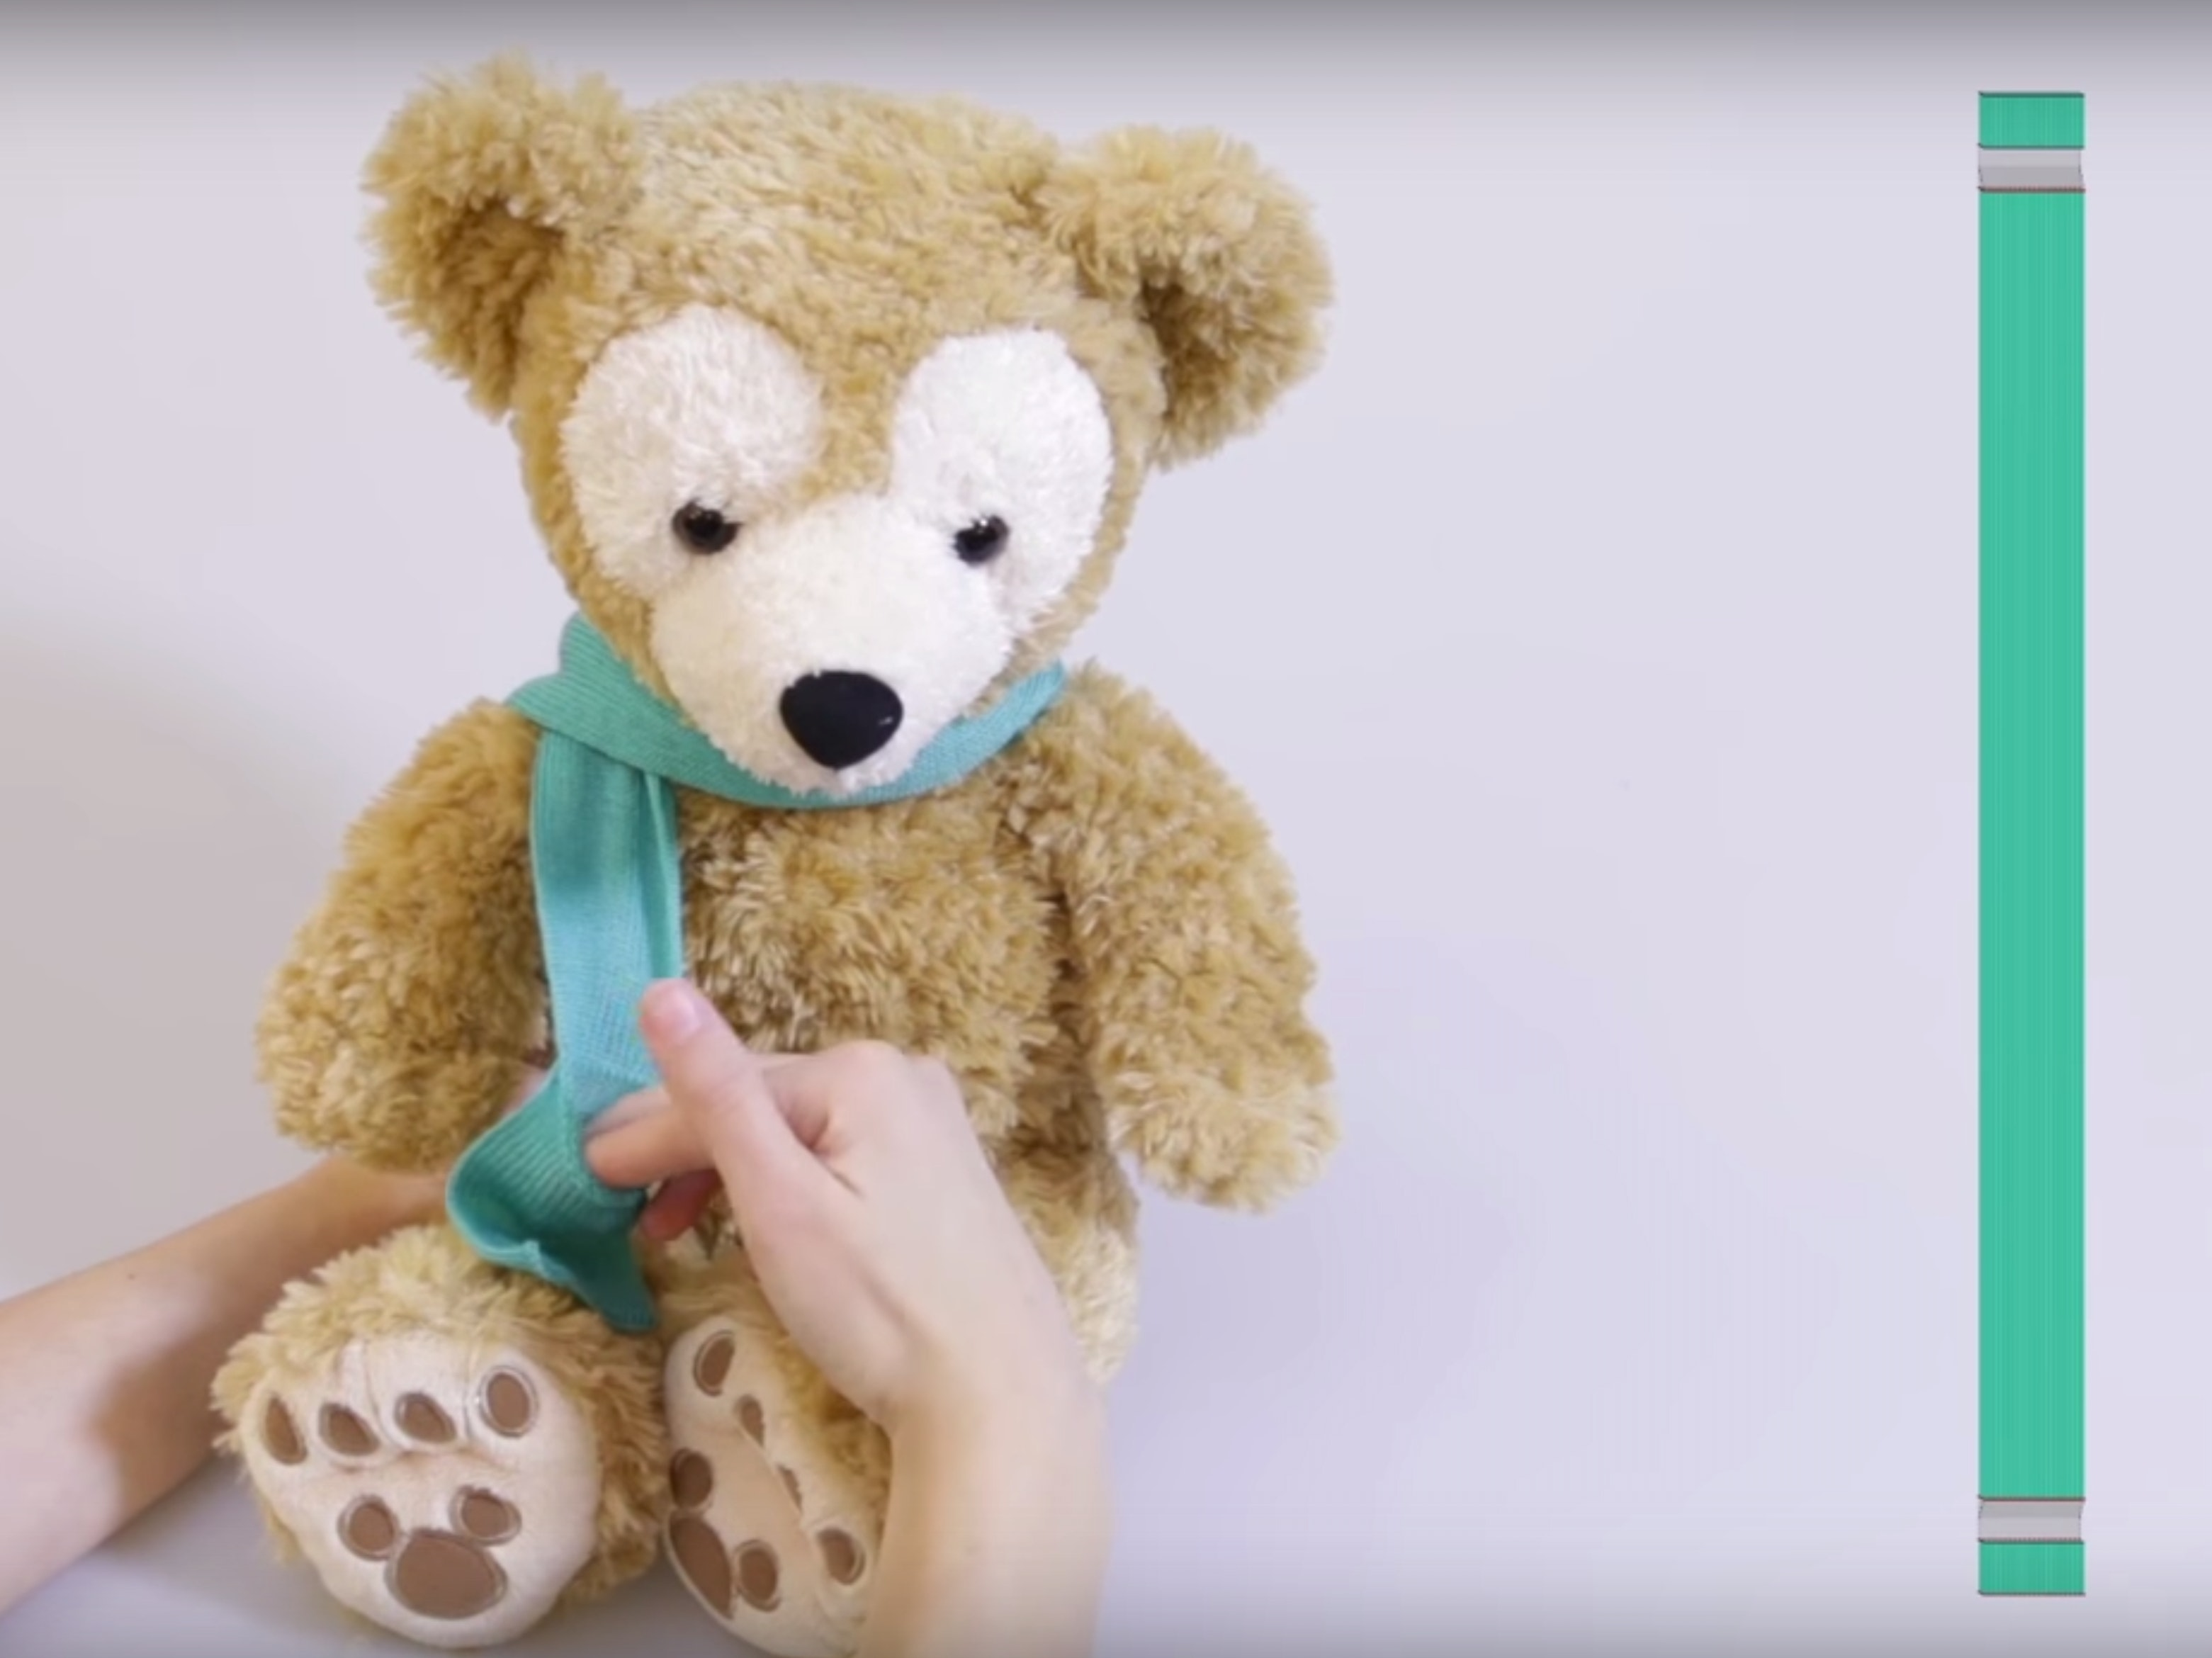 3D printed knitting is changing with this invention.